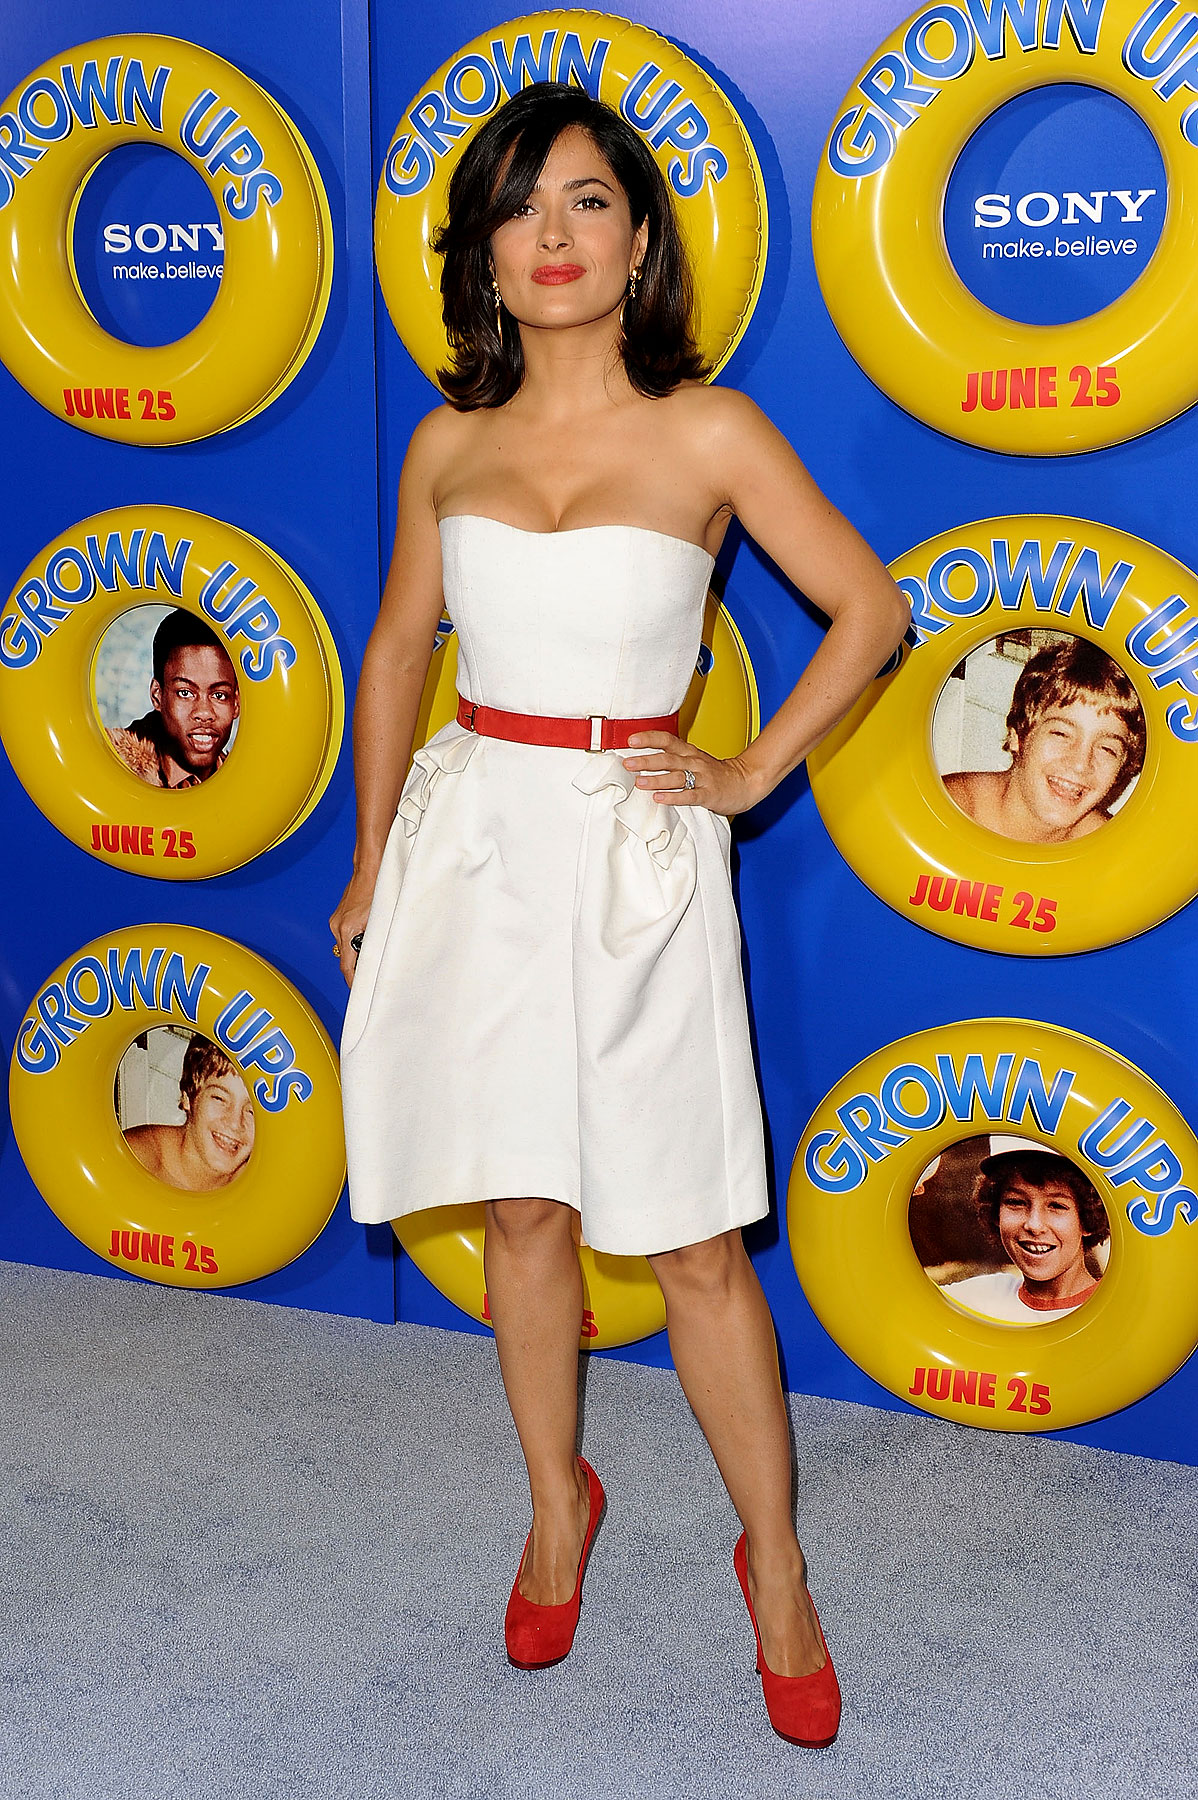 Fashion FAILs & FTWs Of The 'Grown Ups' Premiere (PHOTOS)